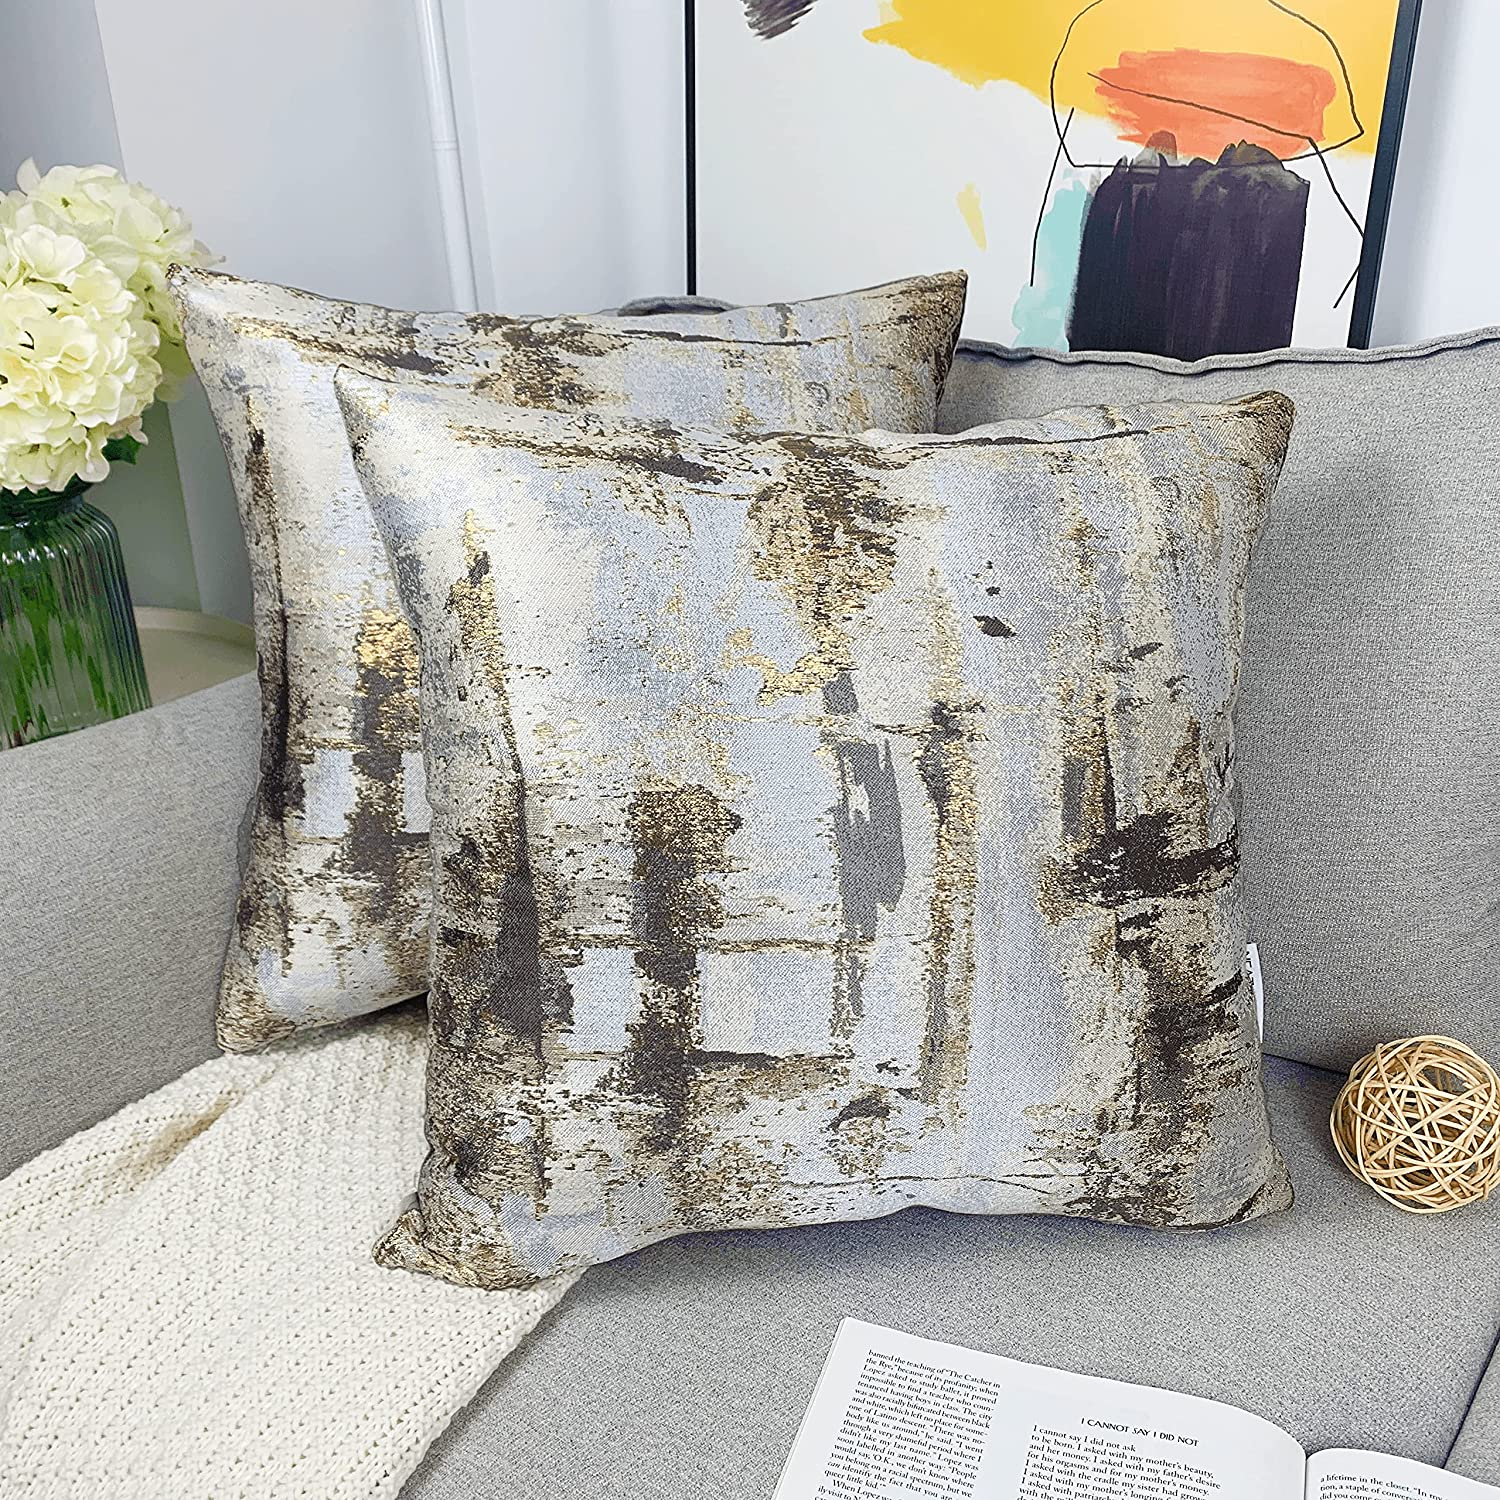 NeatBlanc Jacquard Abstract Decorative Throw Pillow Cover Luxury Pillow Case Cushion Cover 18 x 18 inches 45 x 45 cm for Couch Bed Car Office (Brown/Silver/Gold - 2 Pack, 18 x 18)